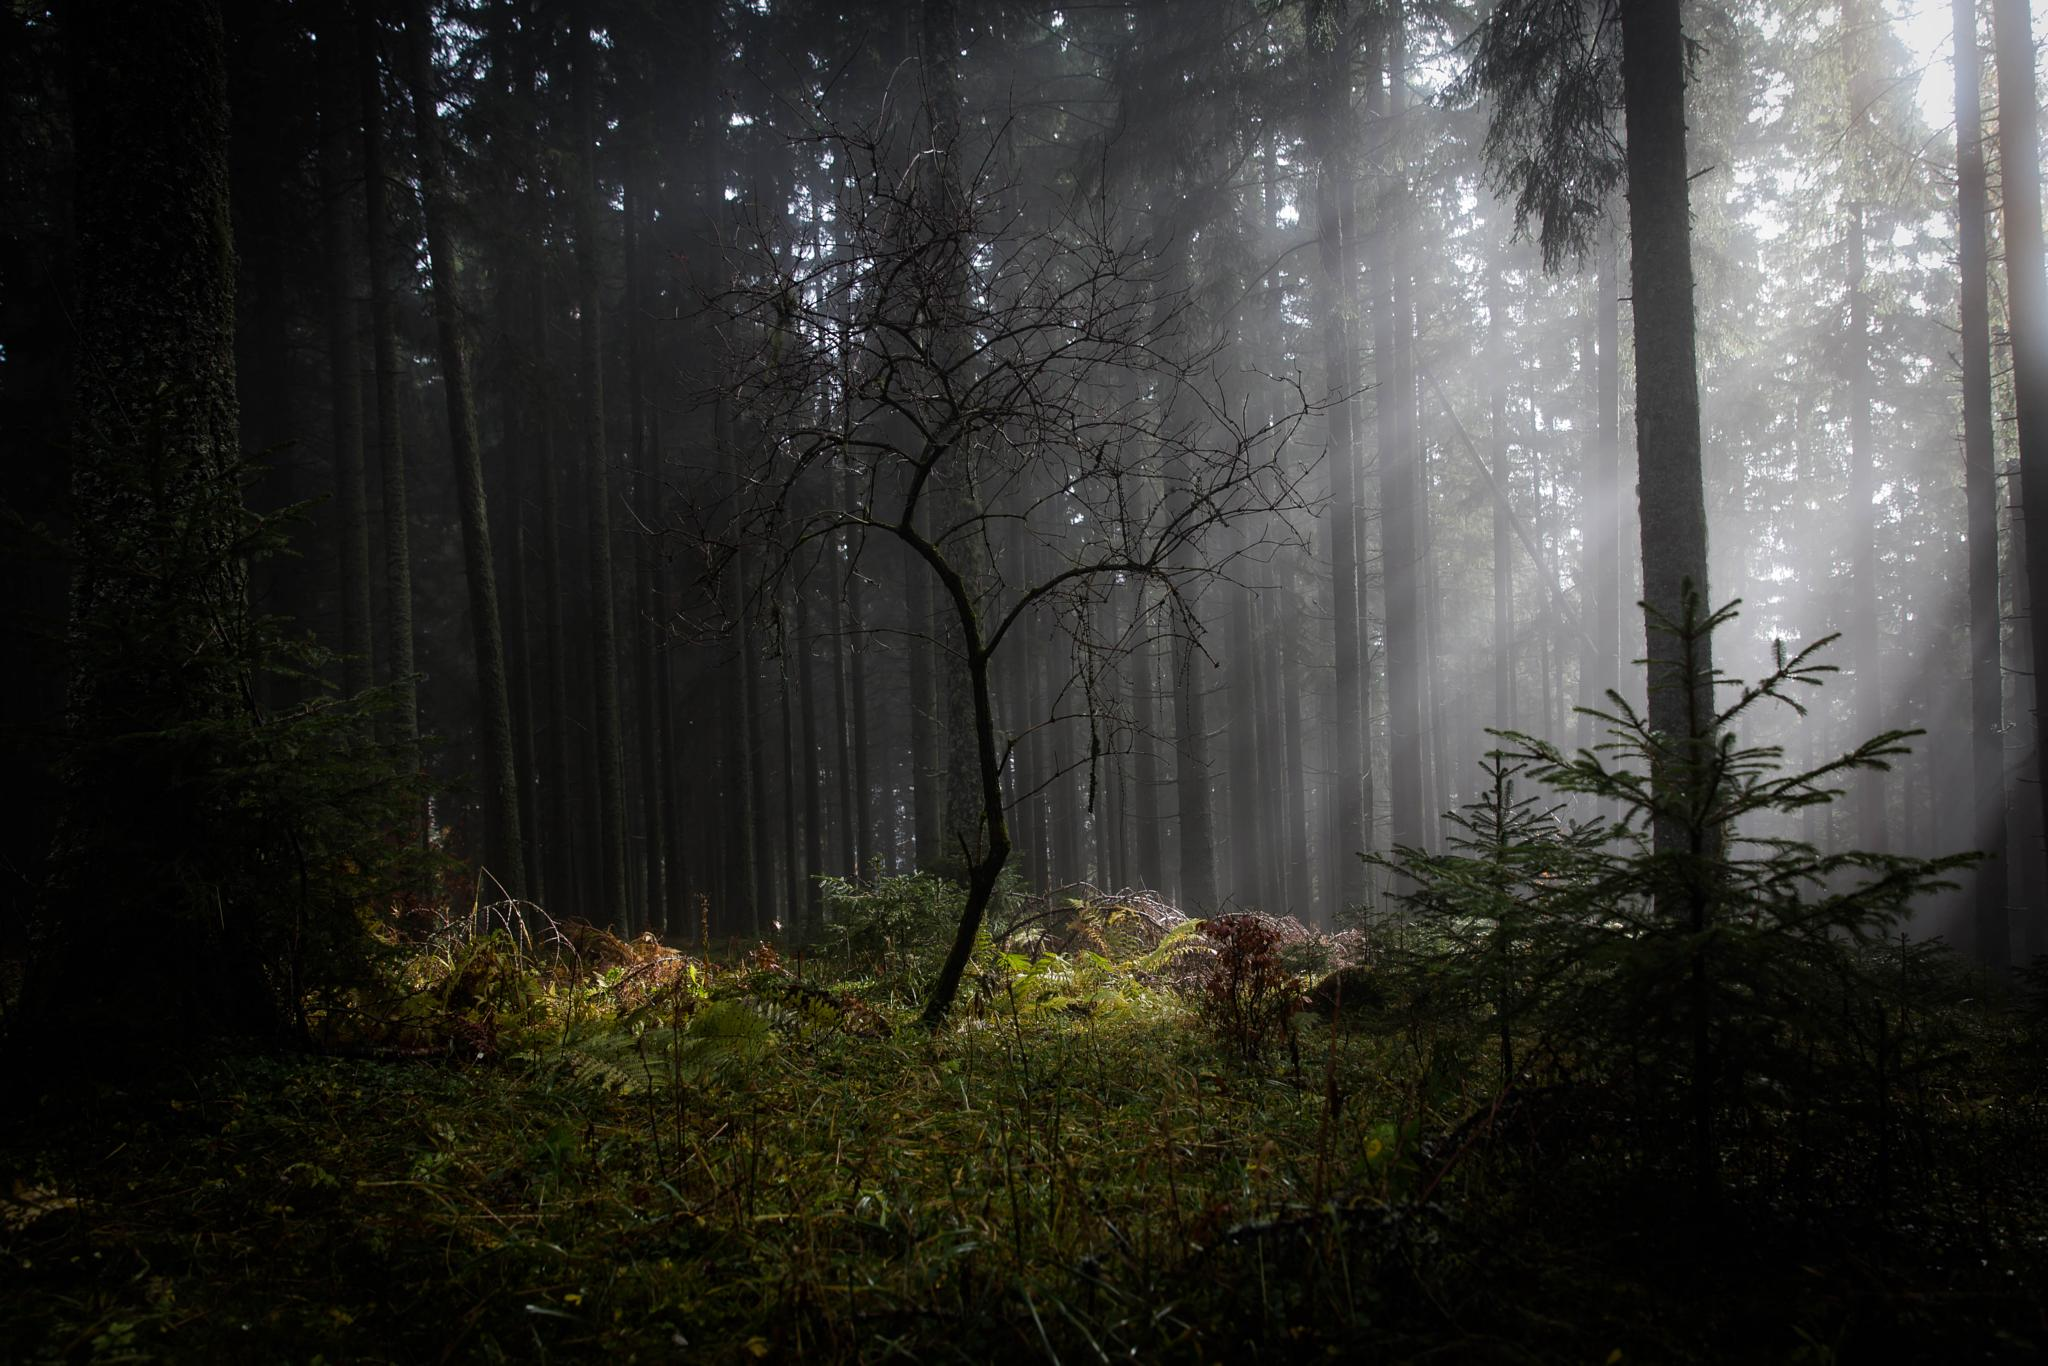 the magic in the woods by Martin Kriebernegg